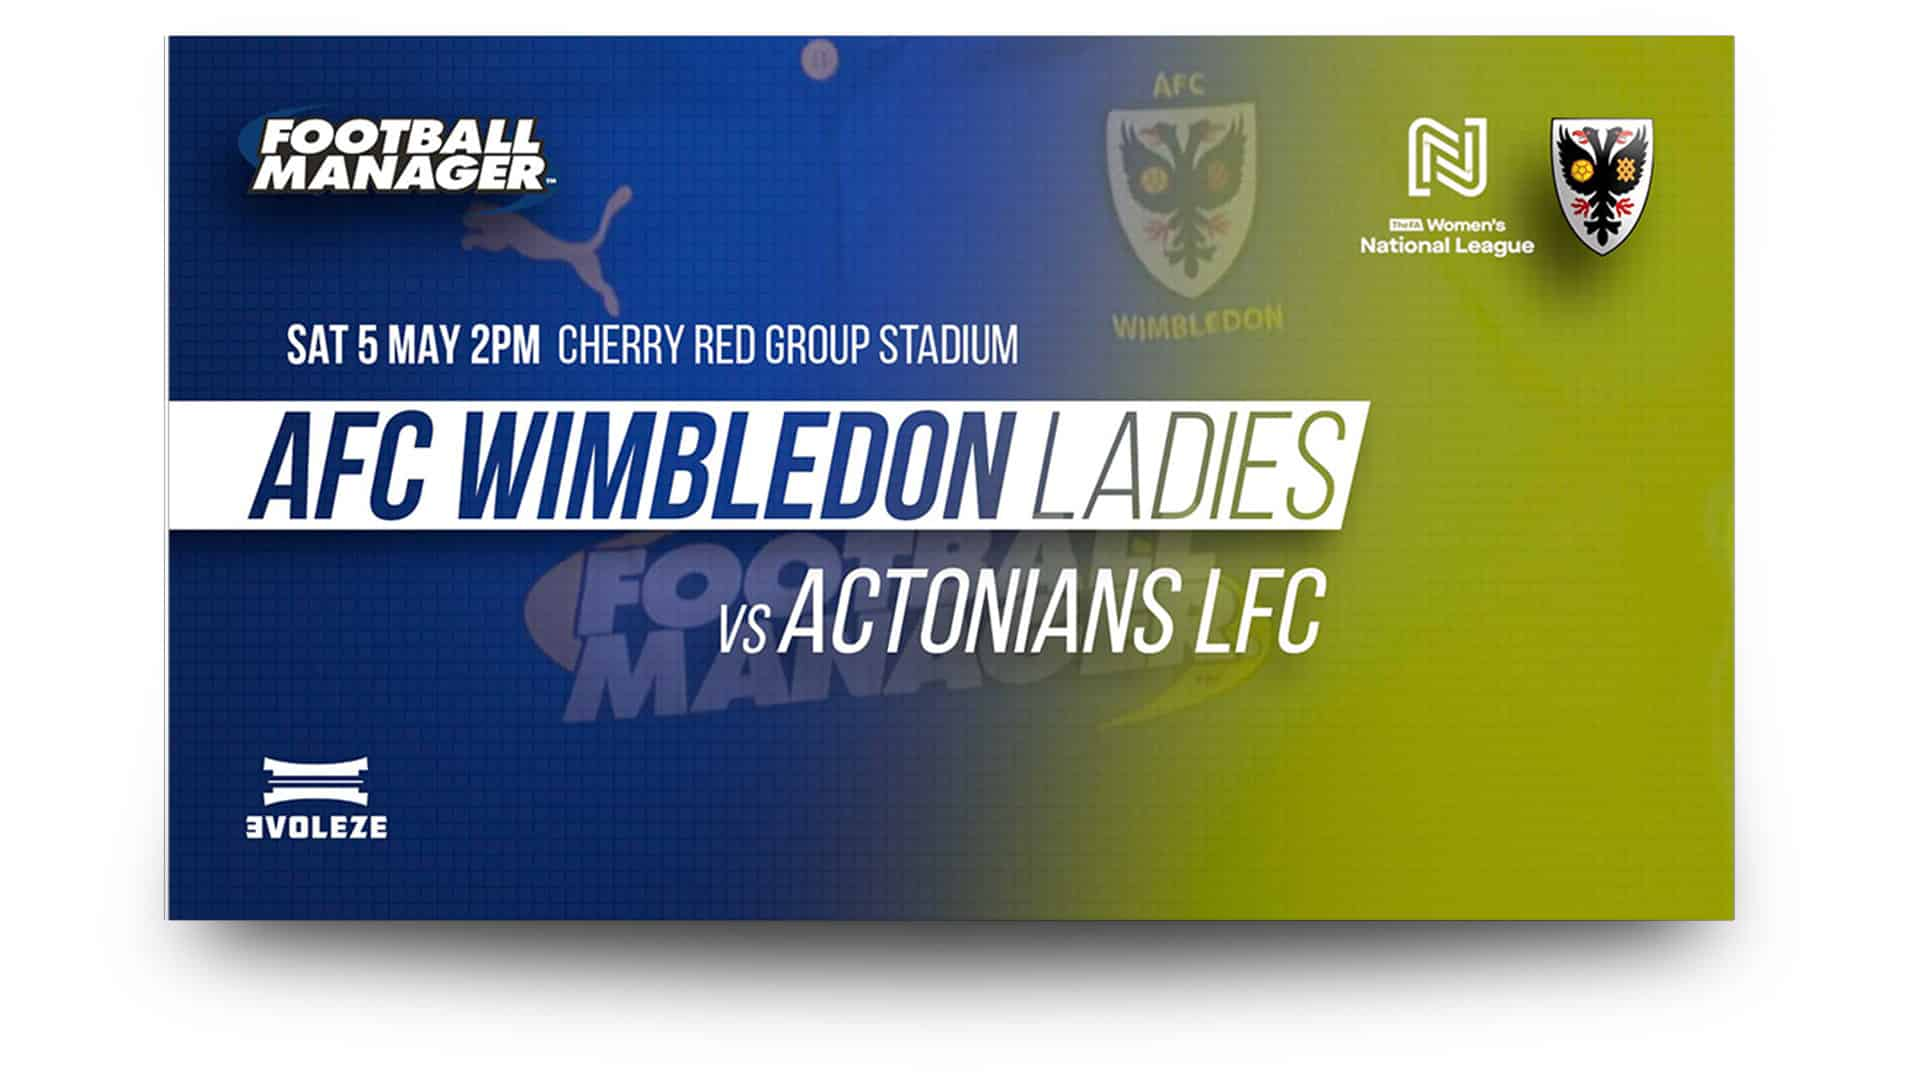 afc wimbledon ladies matchday graphics